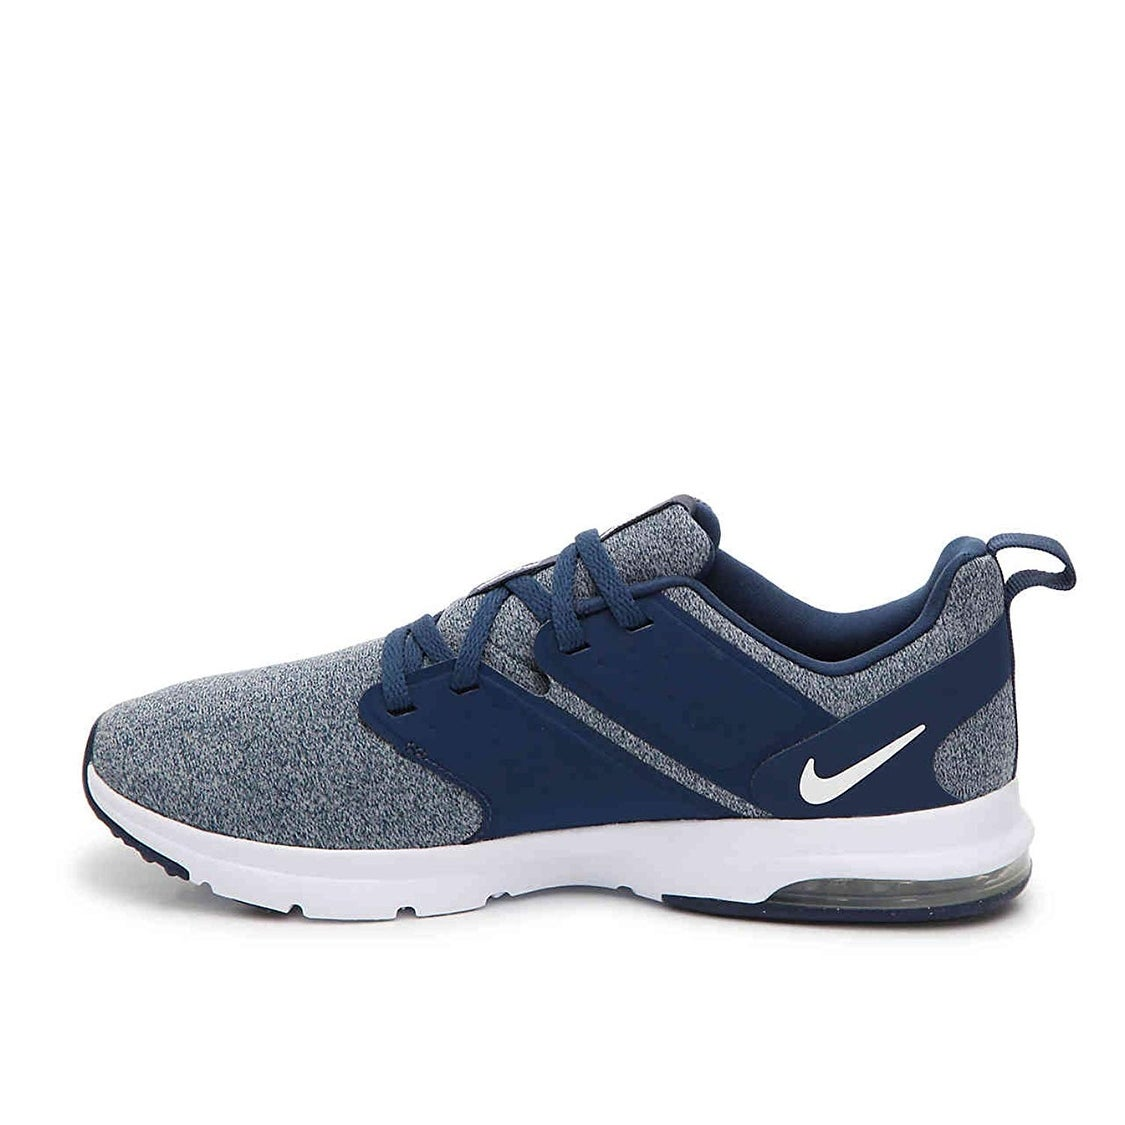 Shop Nike Women s Air Bella Navy White-Wolf Grey Training Shoes (9.5) -  Free Shipping Today - Overstock - 25878054 f7cc551f4